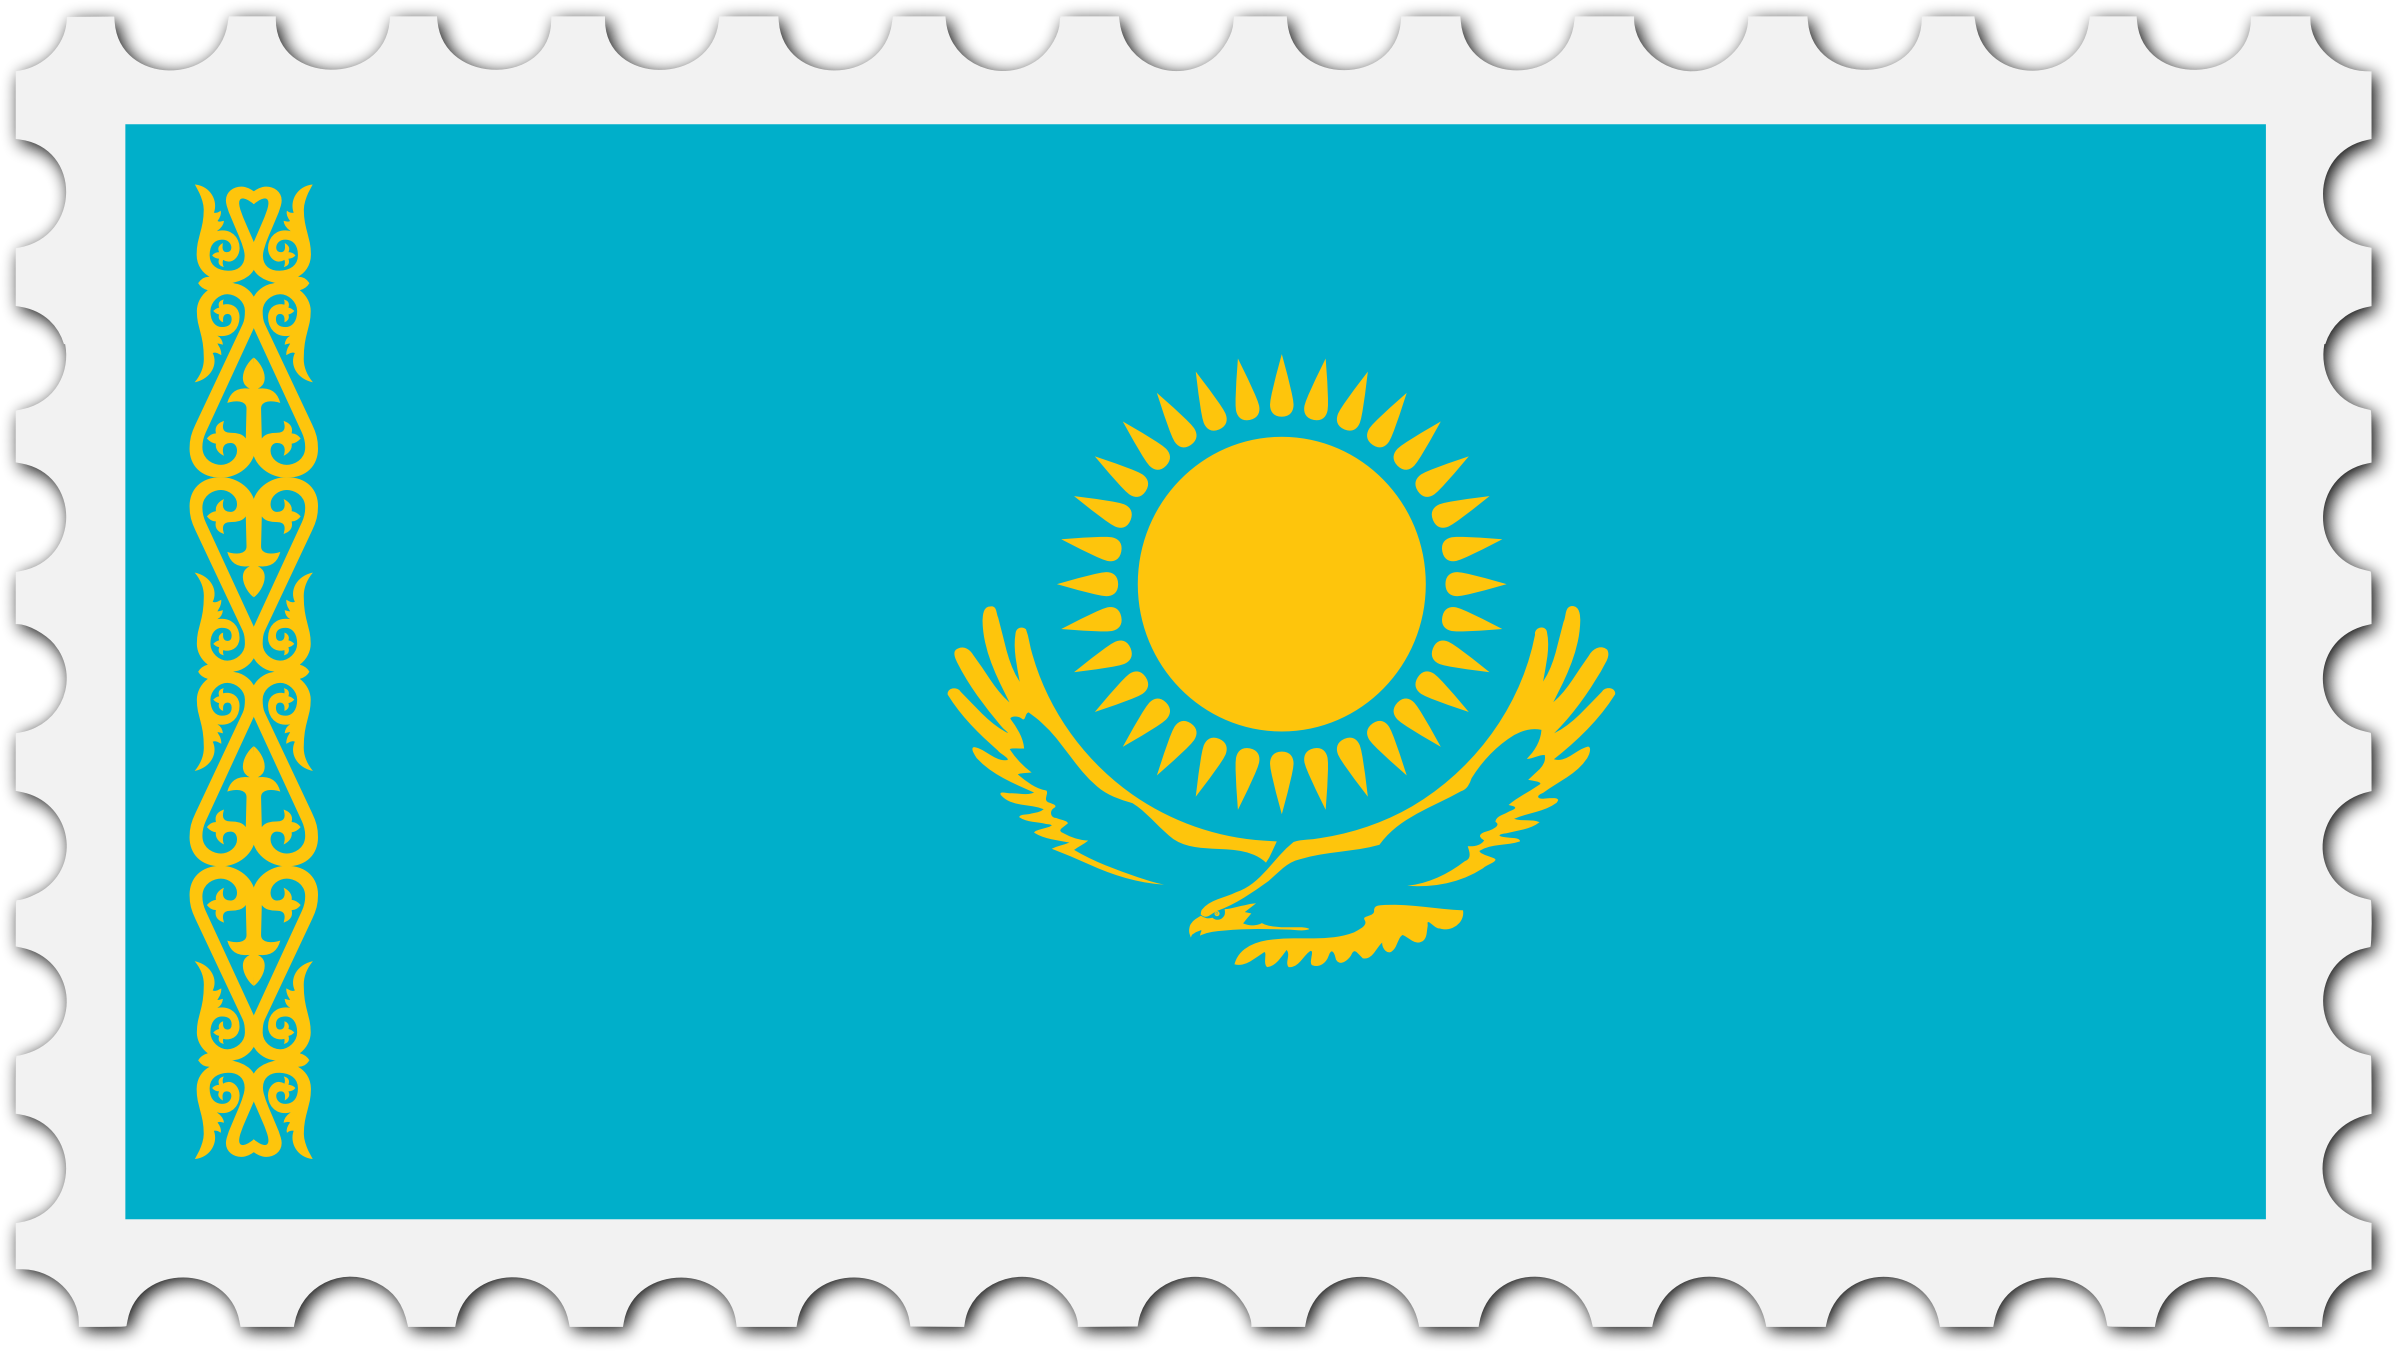 Kazakhstan flag stamp by Firkin